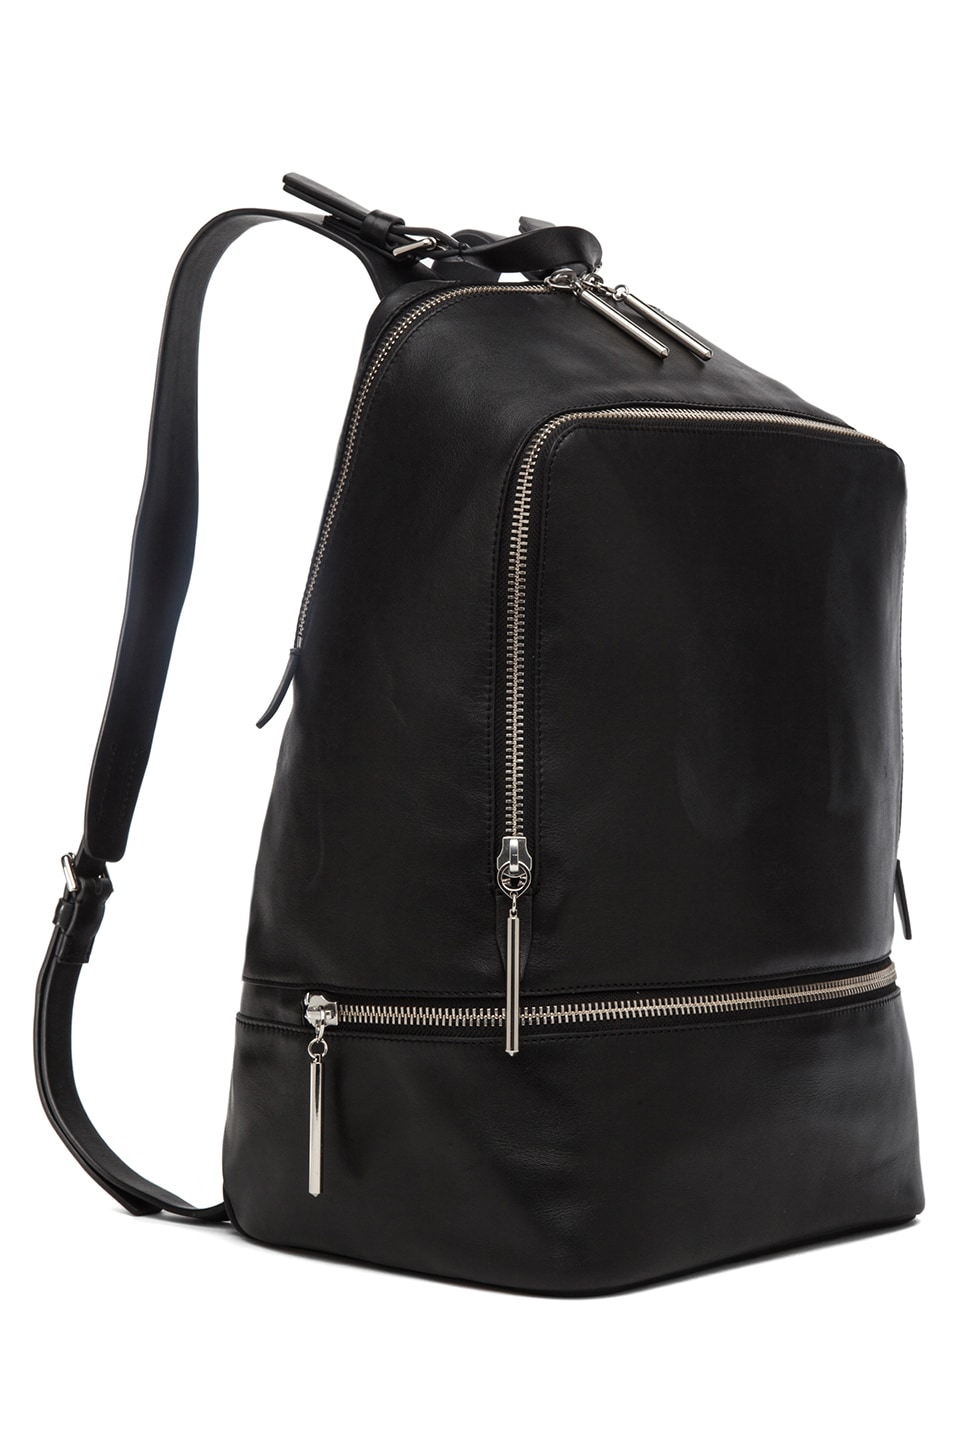 Image 3 of 3.1 phillip lim Zip Around Back Pack in Black